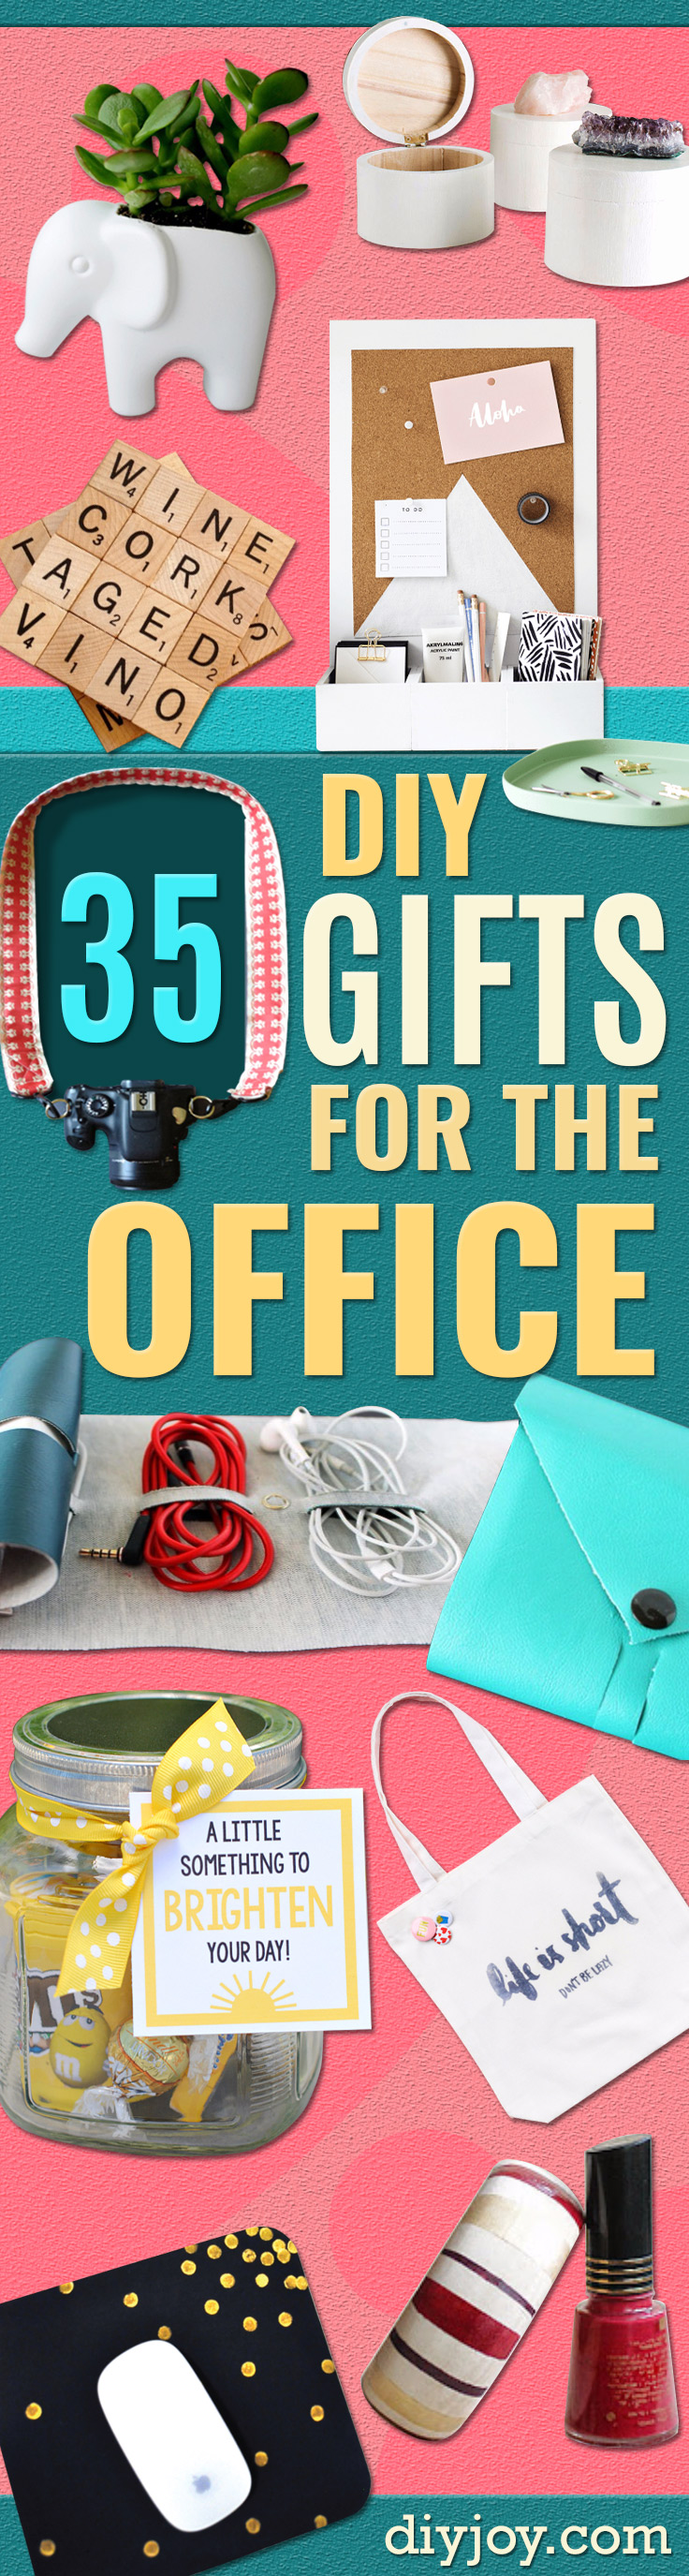 Christmas Gifts For Coworkers.35 Cheap And Easy Gifts For The Office